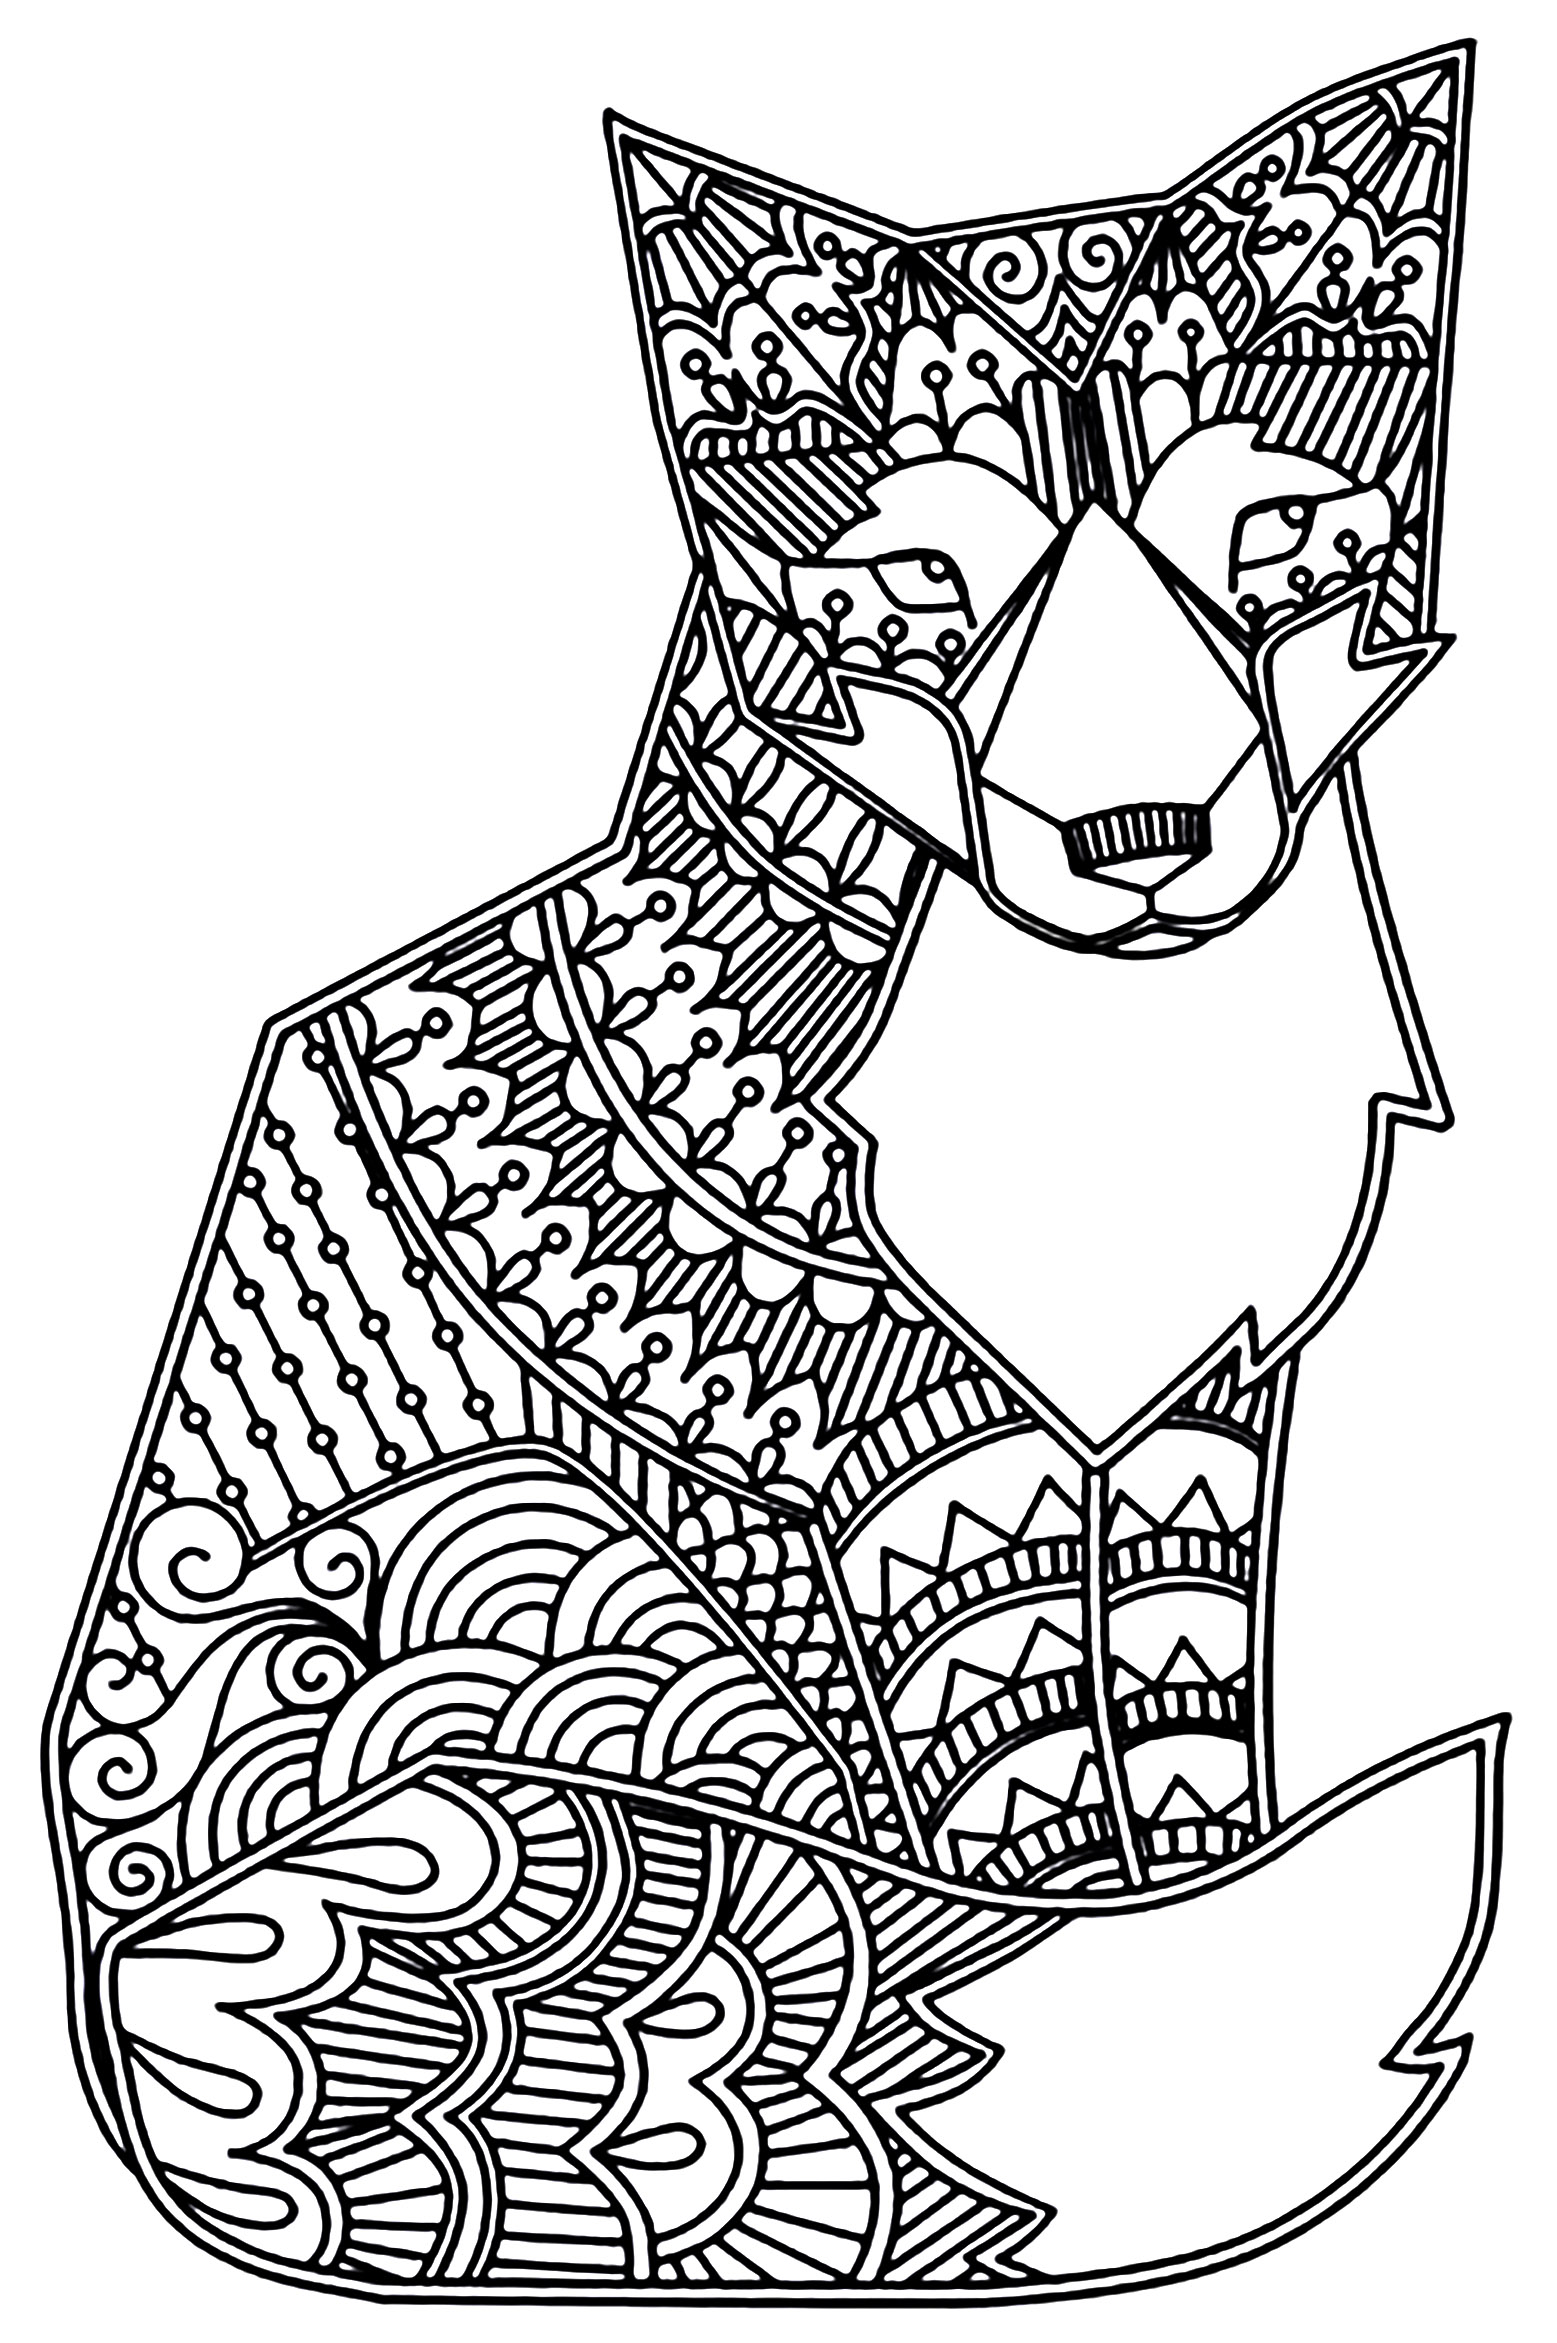 fox coloring pages for adults Fox   Foxes Adult Coloring Pages fox coloring pages for adults